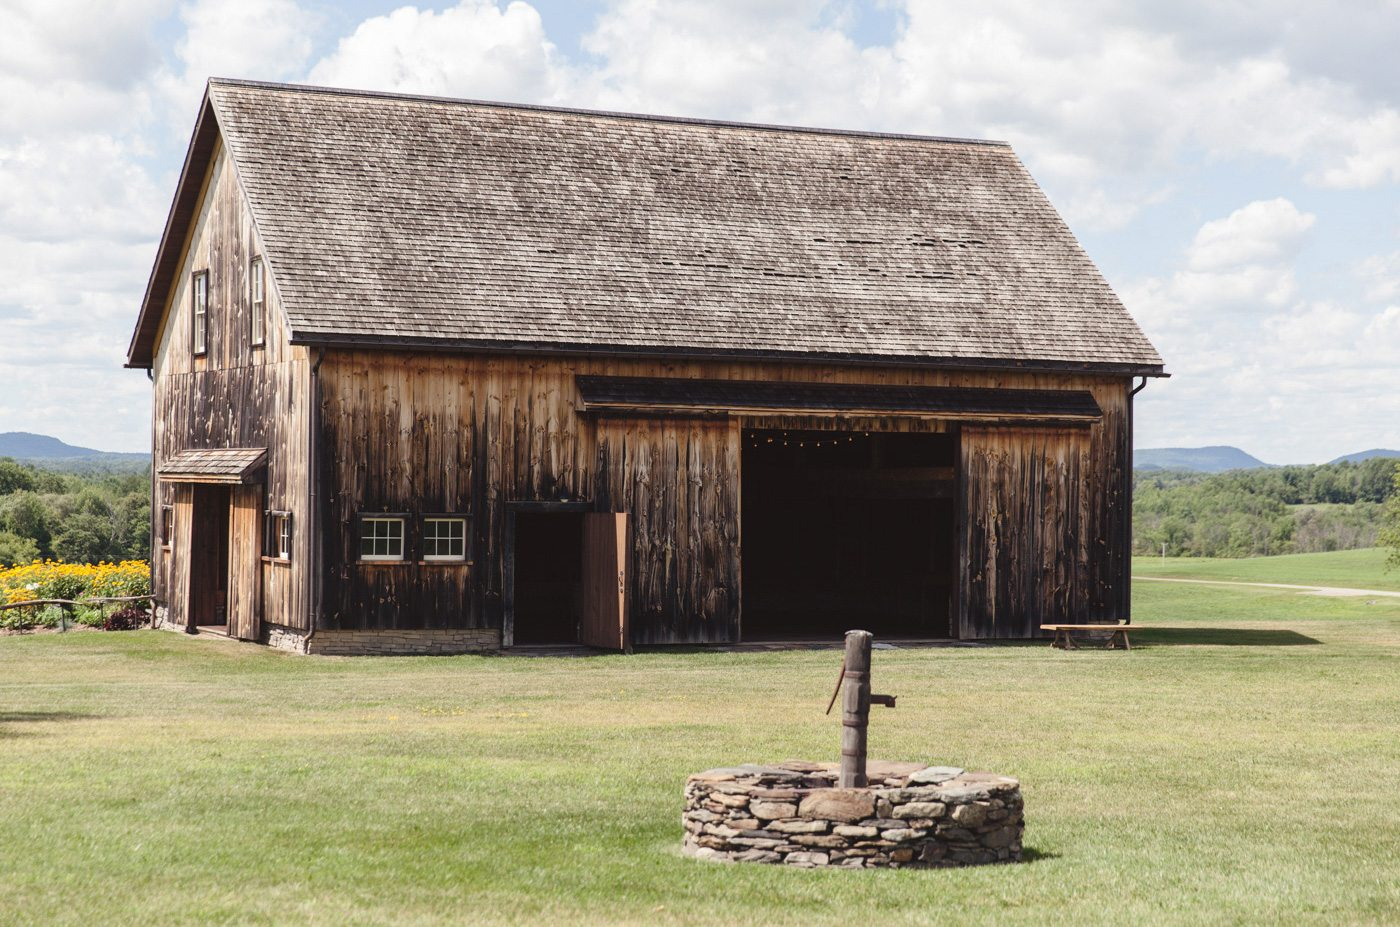 German Barn at Historic Barns of Nipmoose, Photograph by Chelsea Proulx